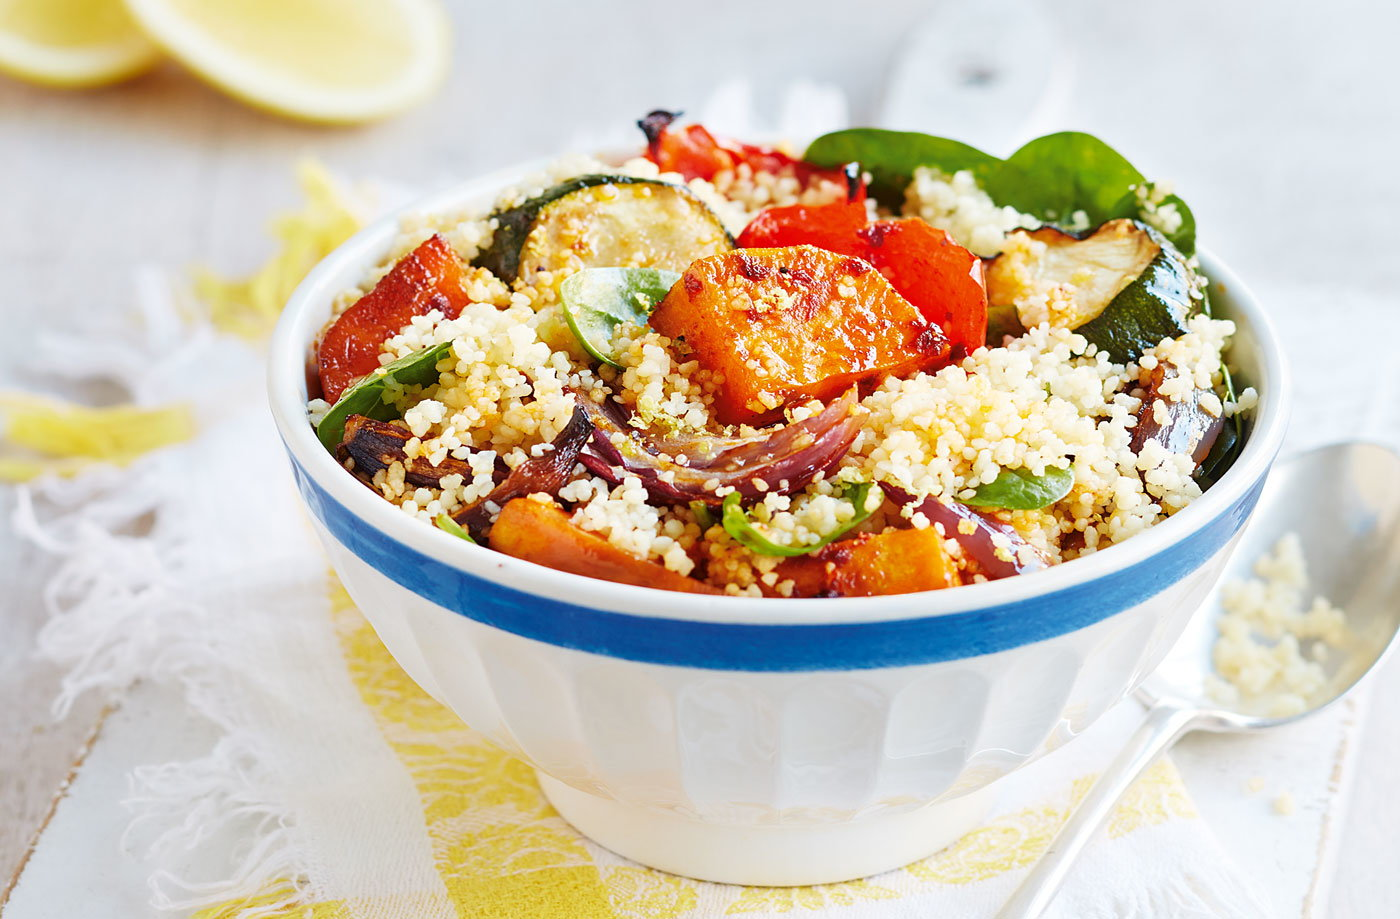 Harissa-spiced vegetable couscous recipe